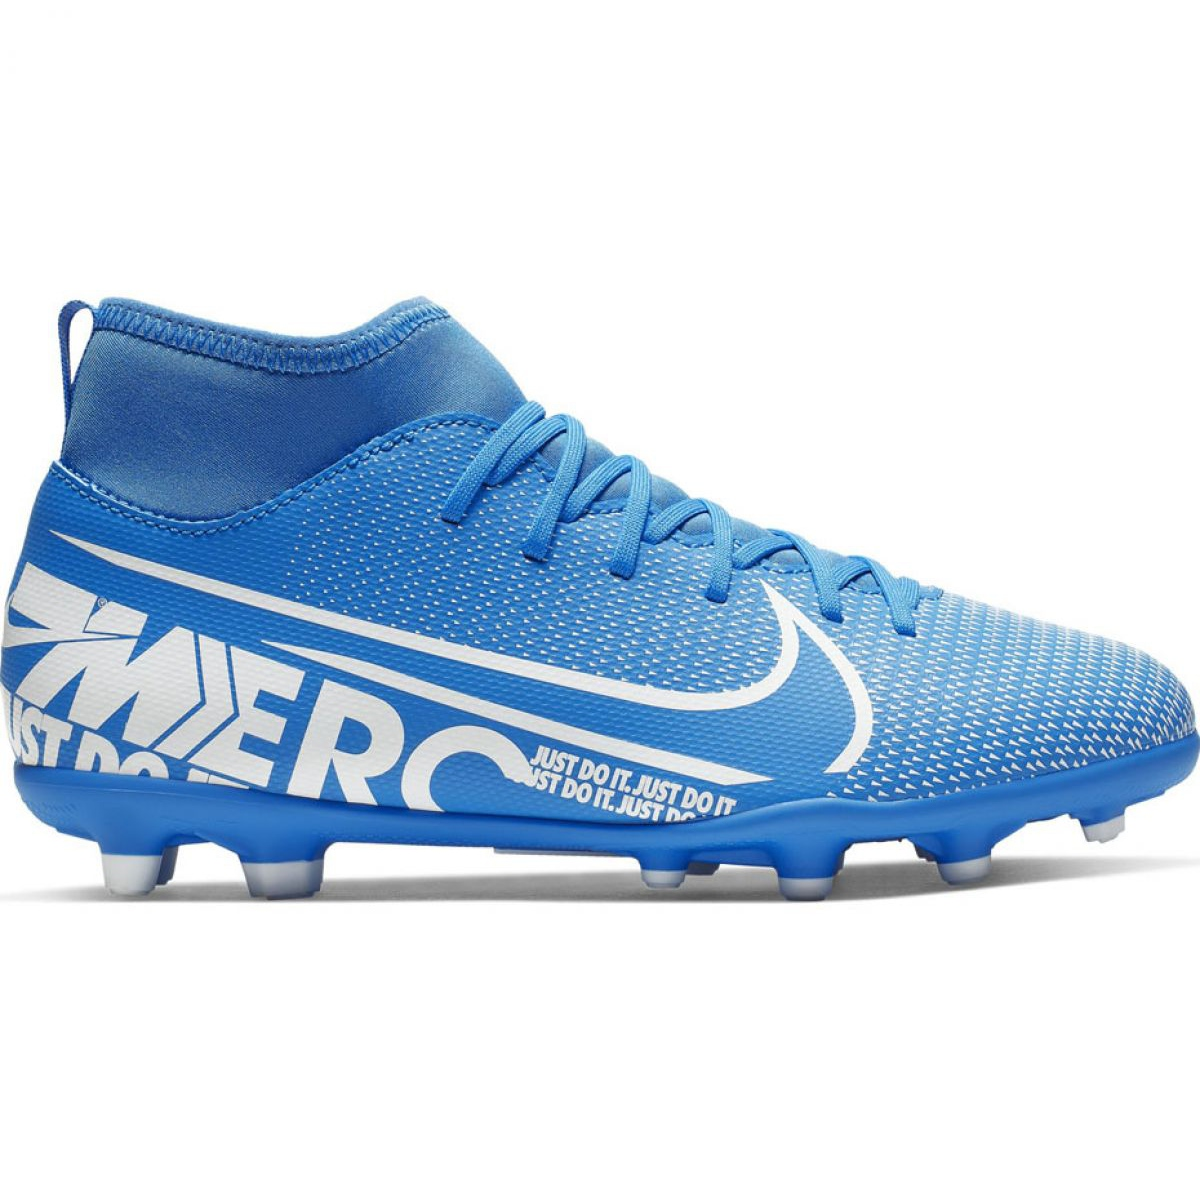 pretty cool most popular shop Details about Chaussures de football Nike Mercurial Superfly 7 Club FG / MG  Jr AT8150-414